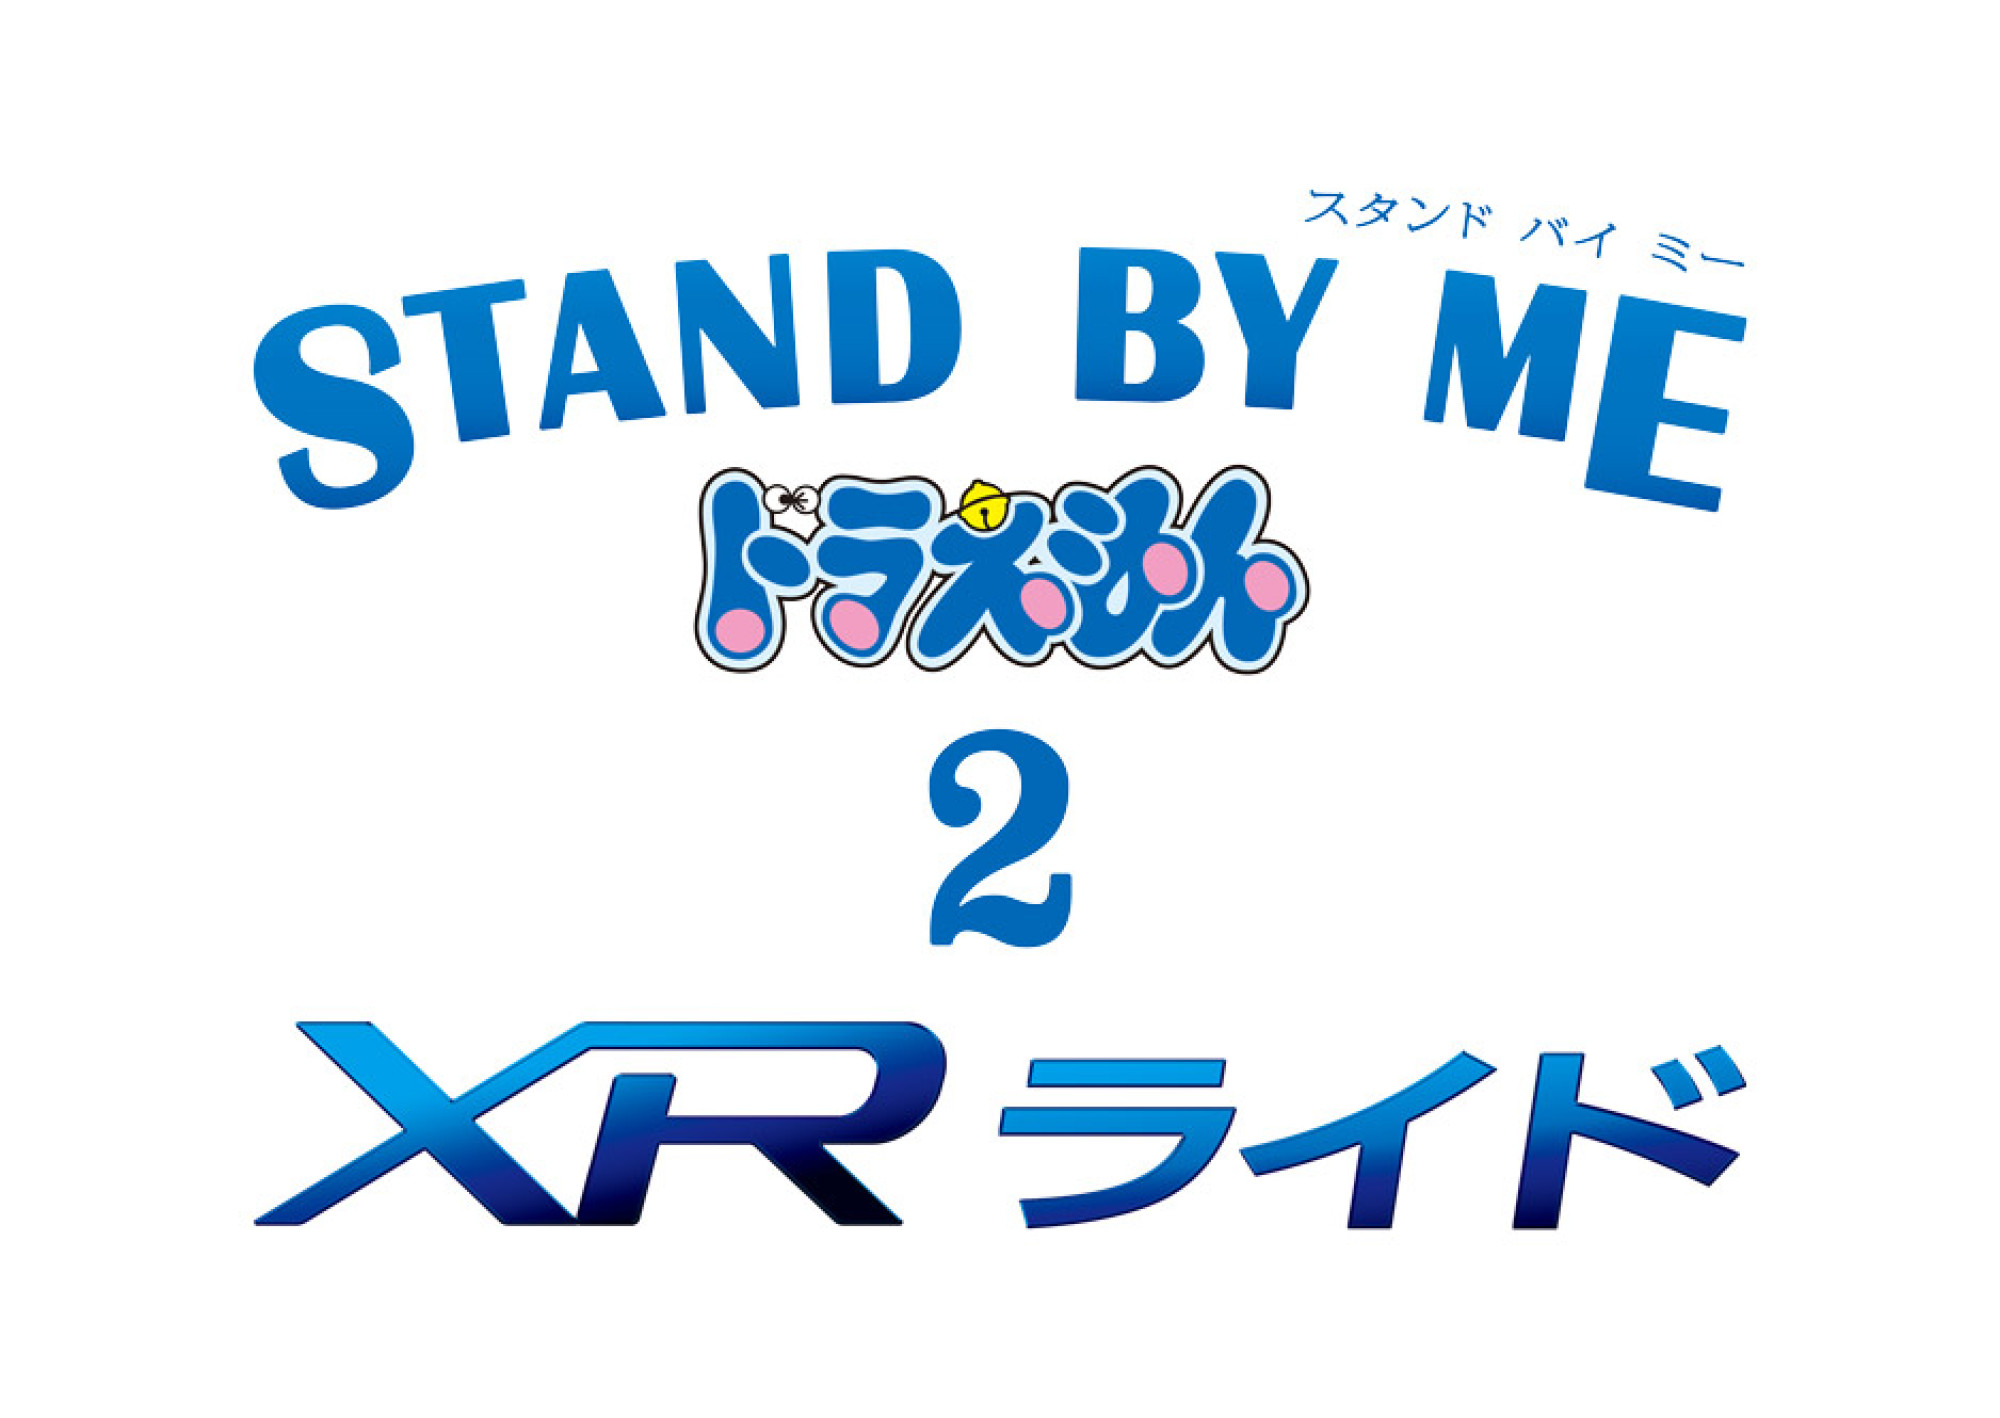 『STAND BY ME ドラえもん 2』 XRライド